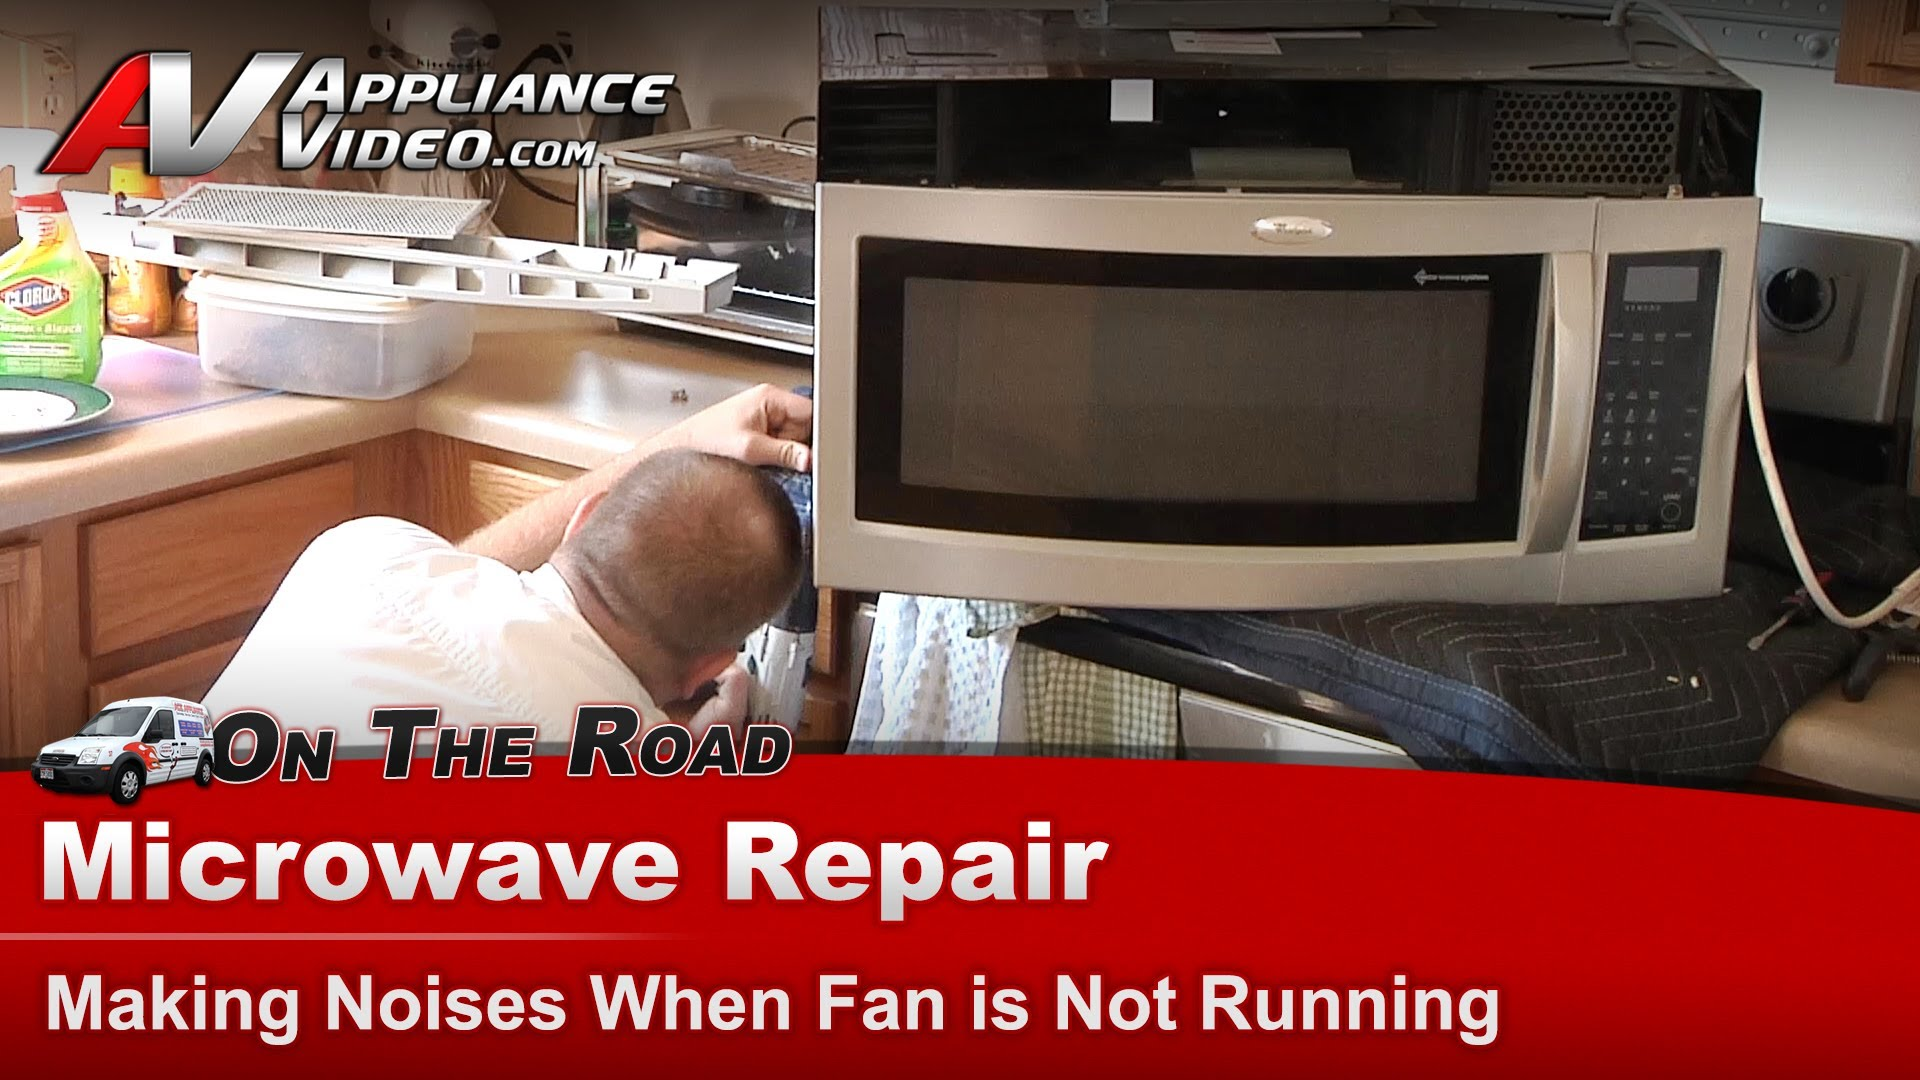 Whirlpool Gh5184xps 4 Microwave Repair Making Noises When Fan Is Not Running Liance Video